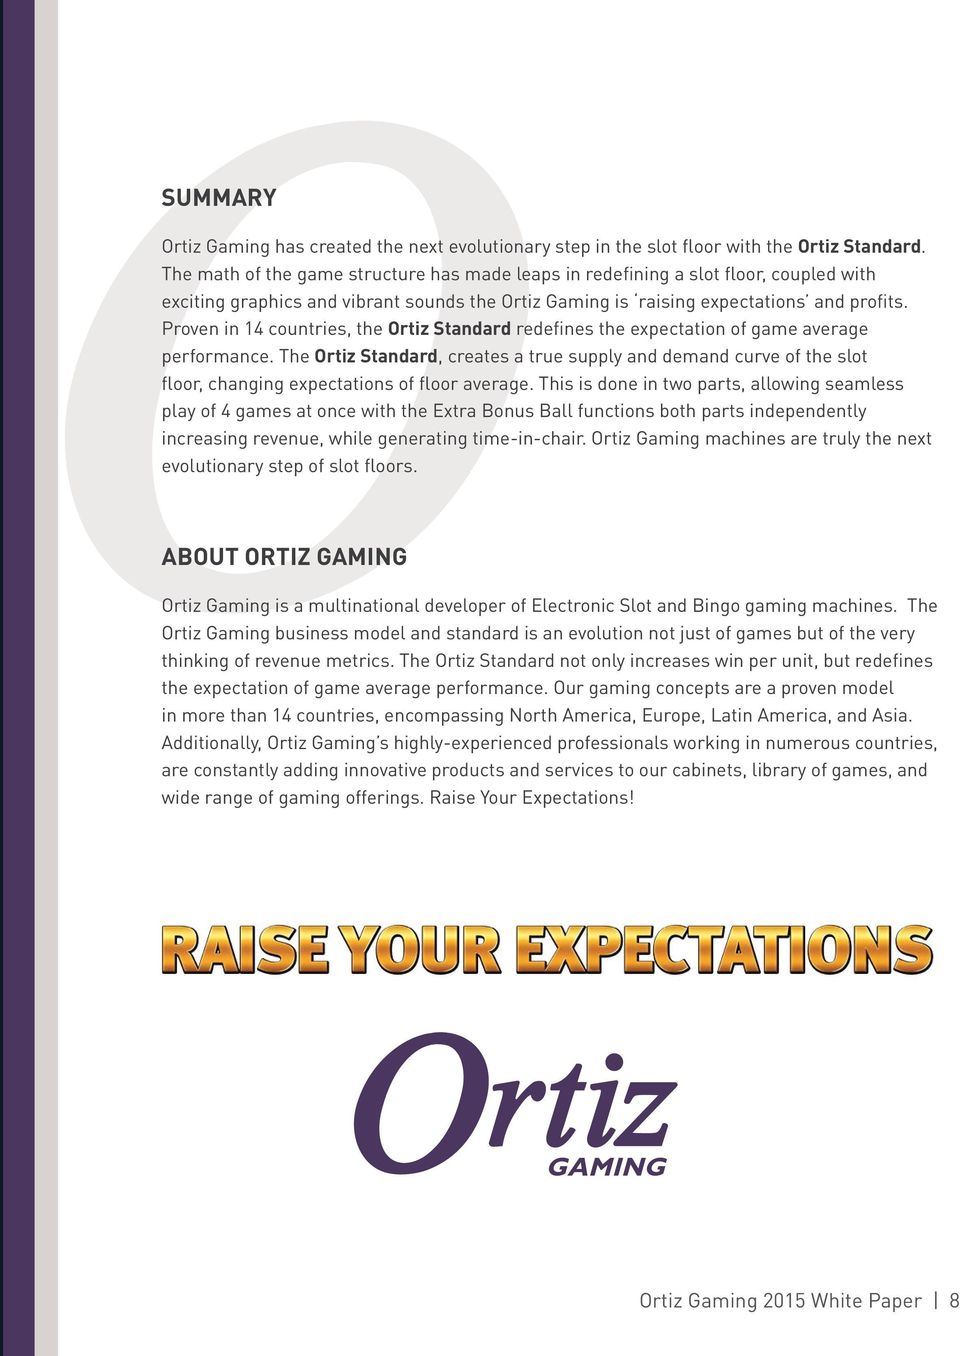 Proven in 14 countries, the Ortiz Standard redefines the expectation of game average performance.